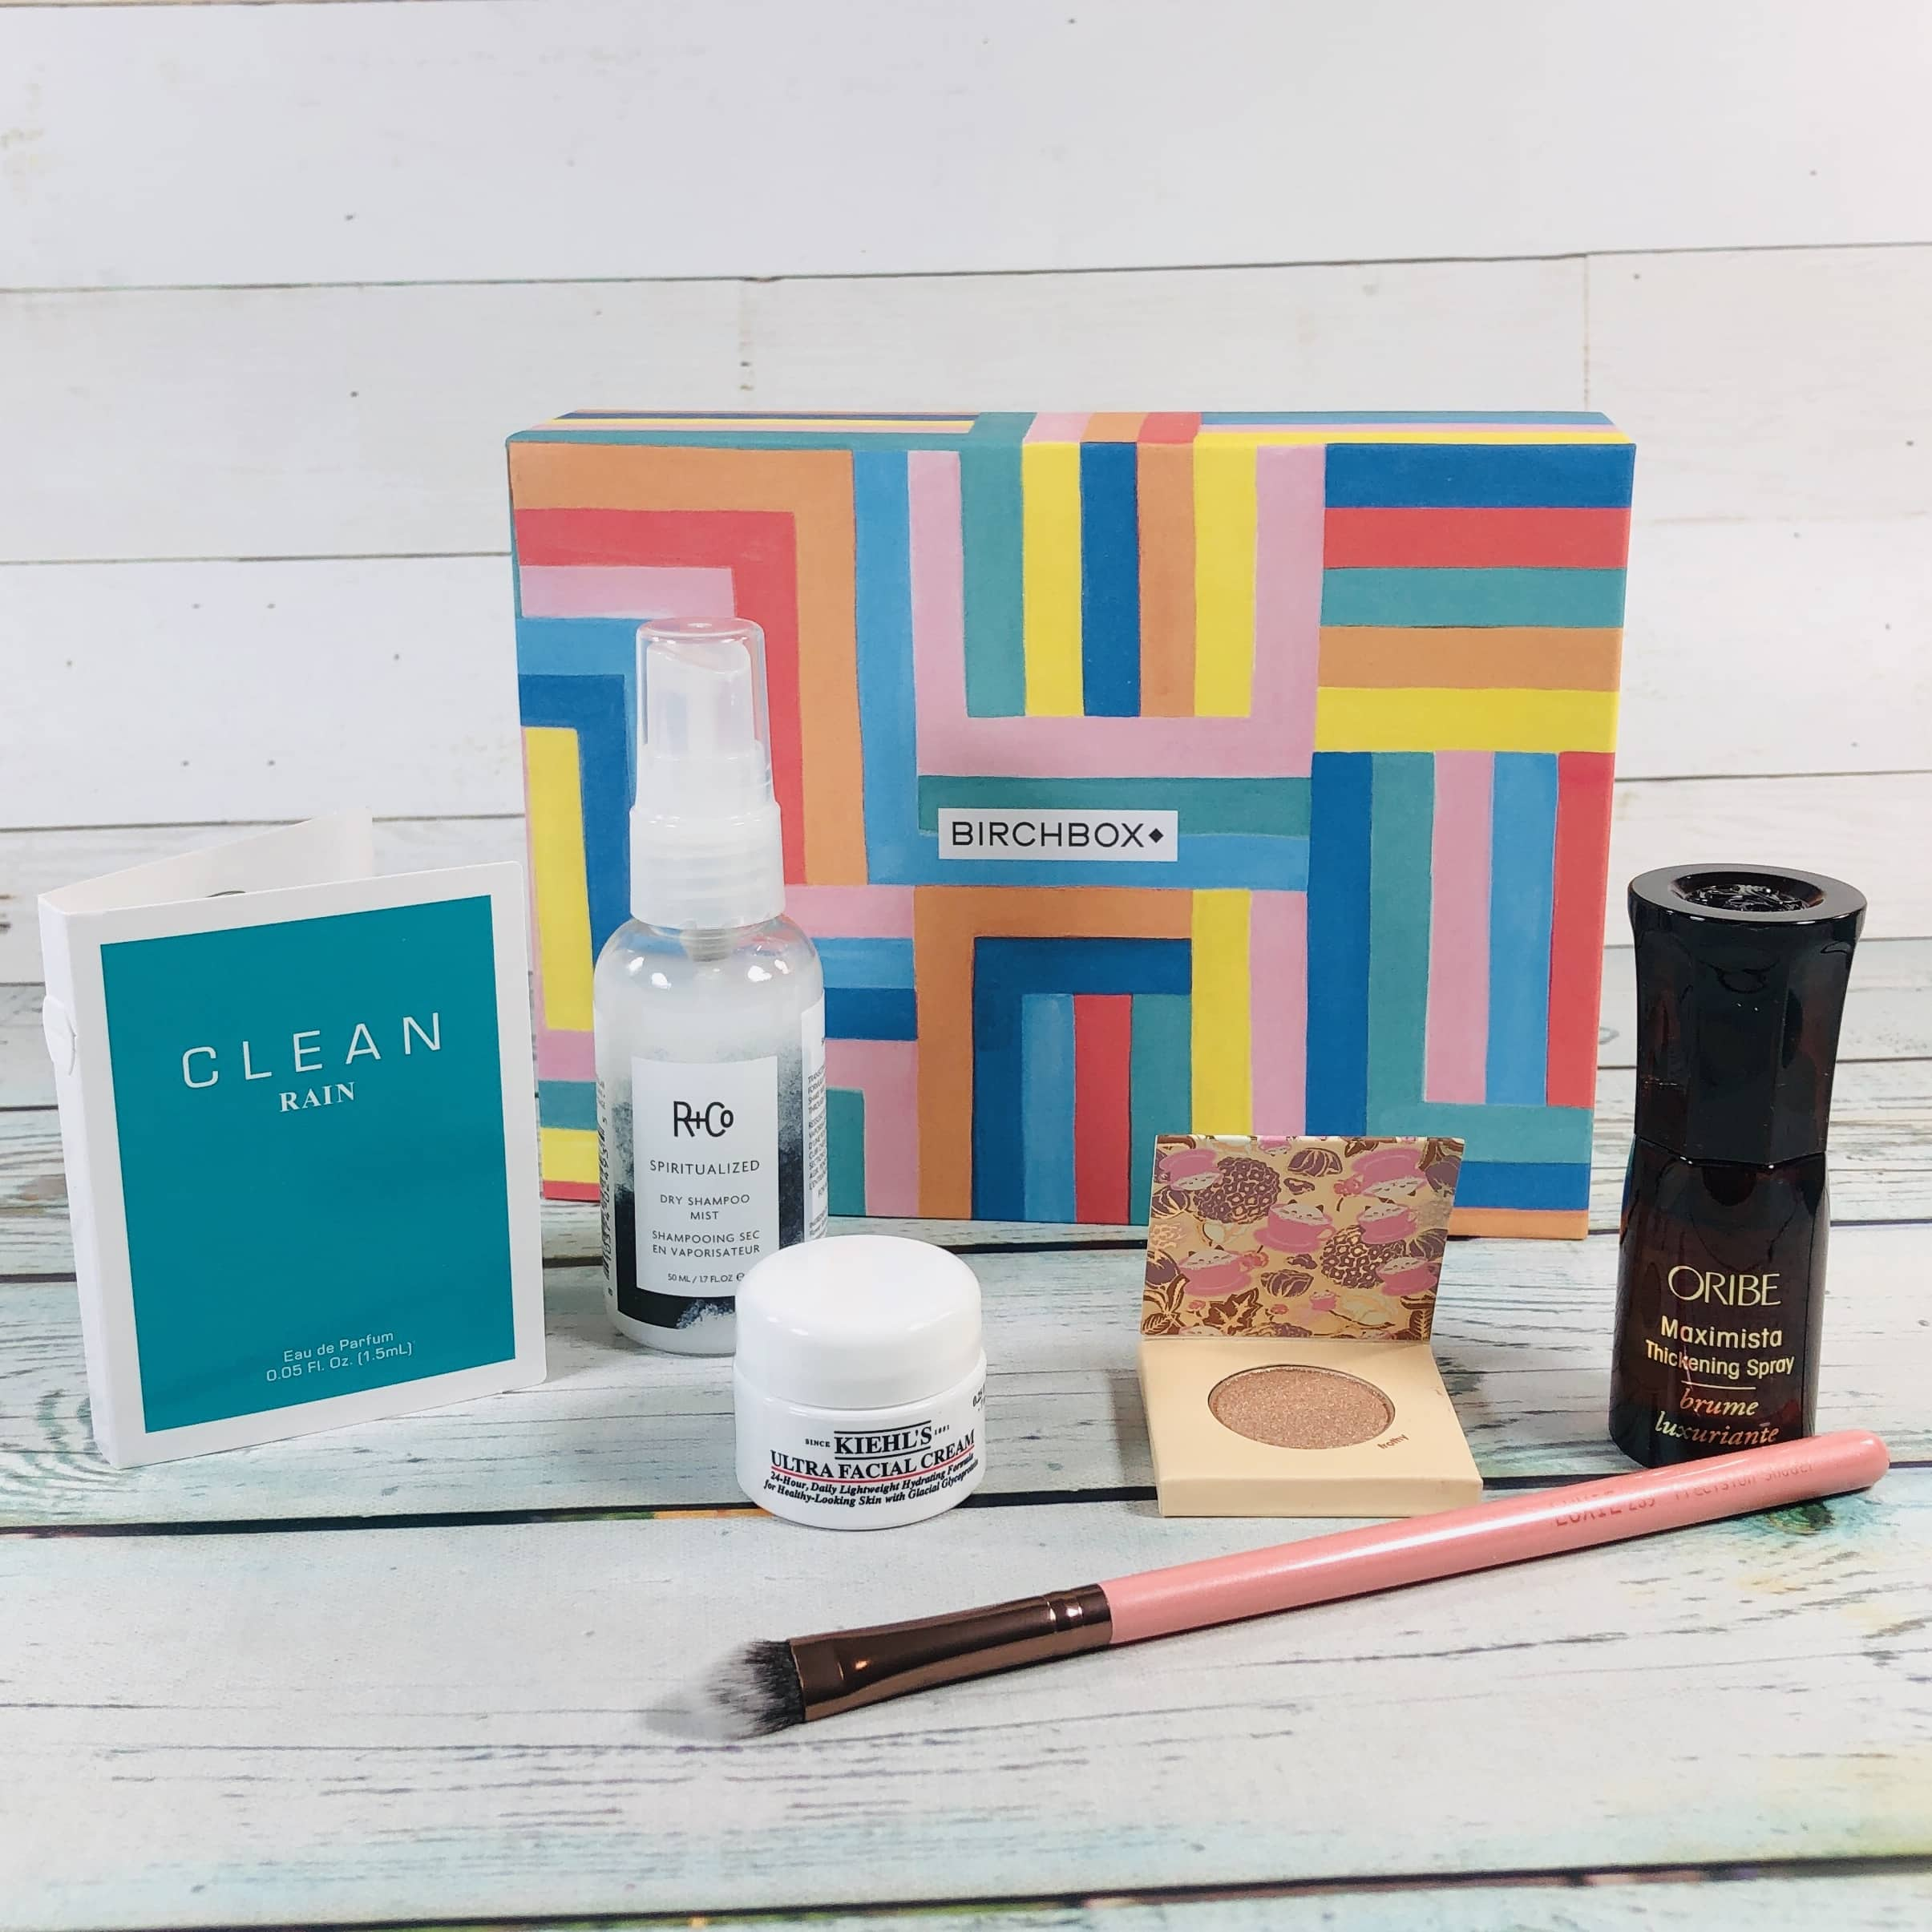 Birchbox June 2019 Box Review + Coupon – Sample Choice